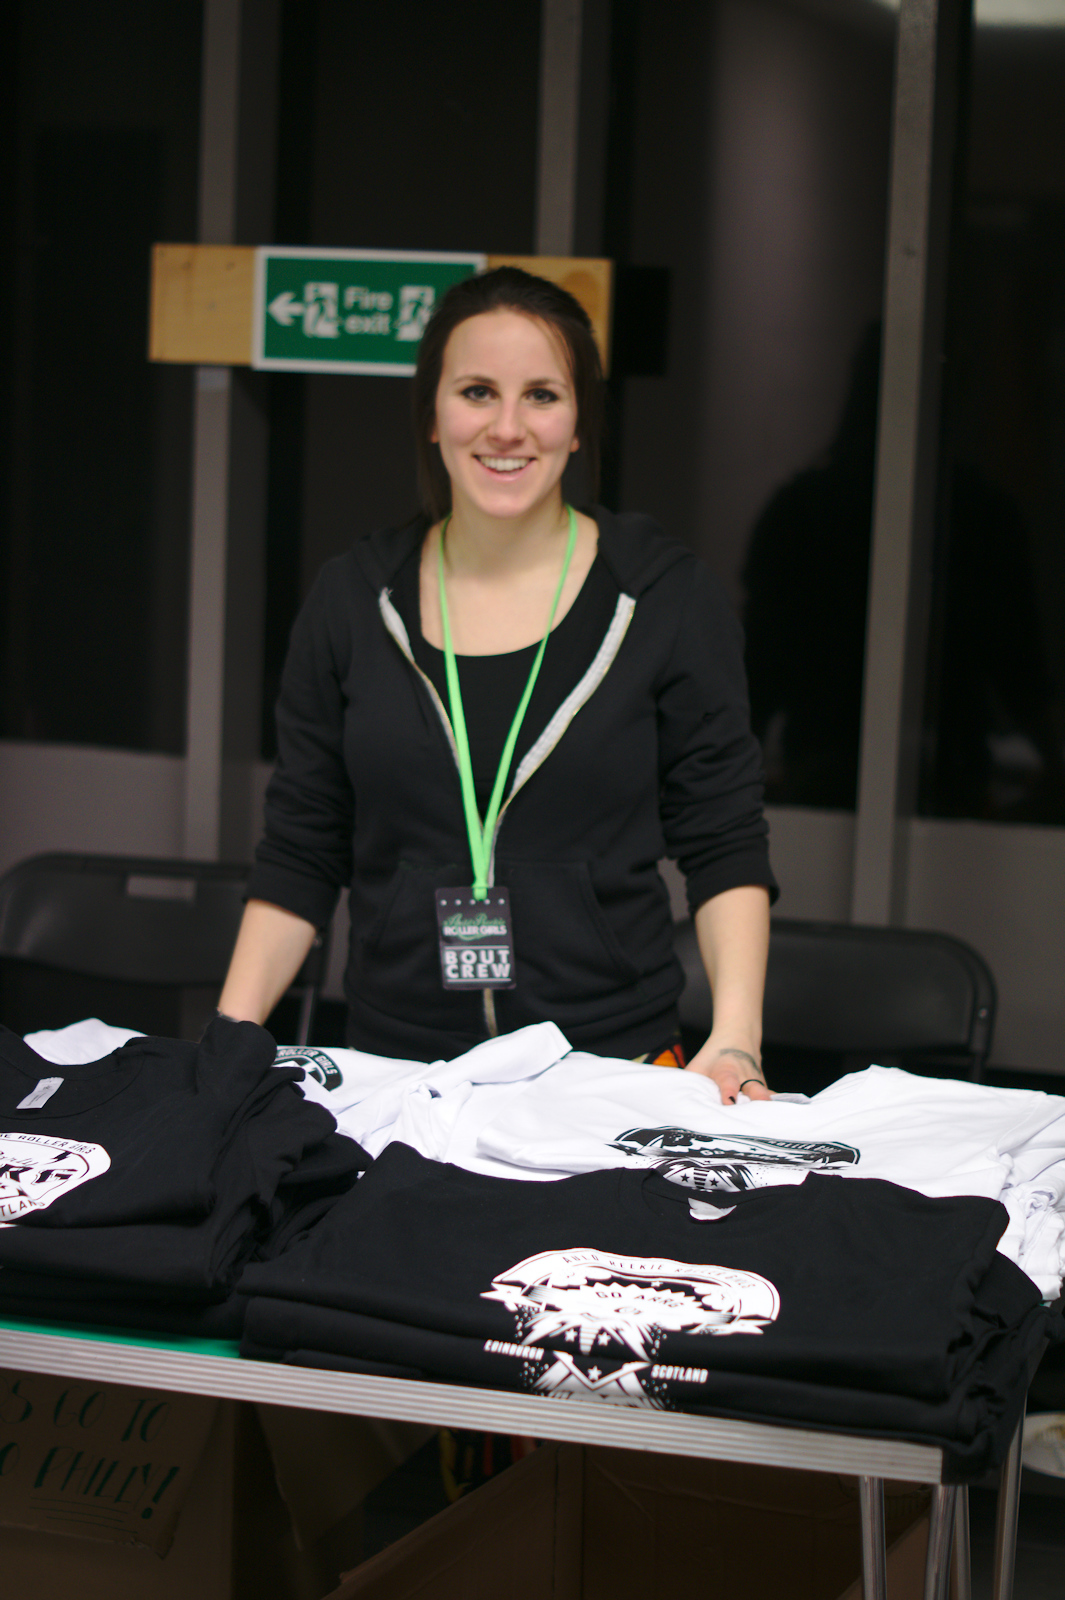 The Auld Reekie Limited Edition Merch stall, at their first Home Season bout of the year.